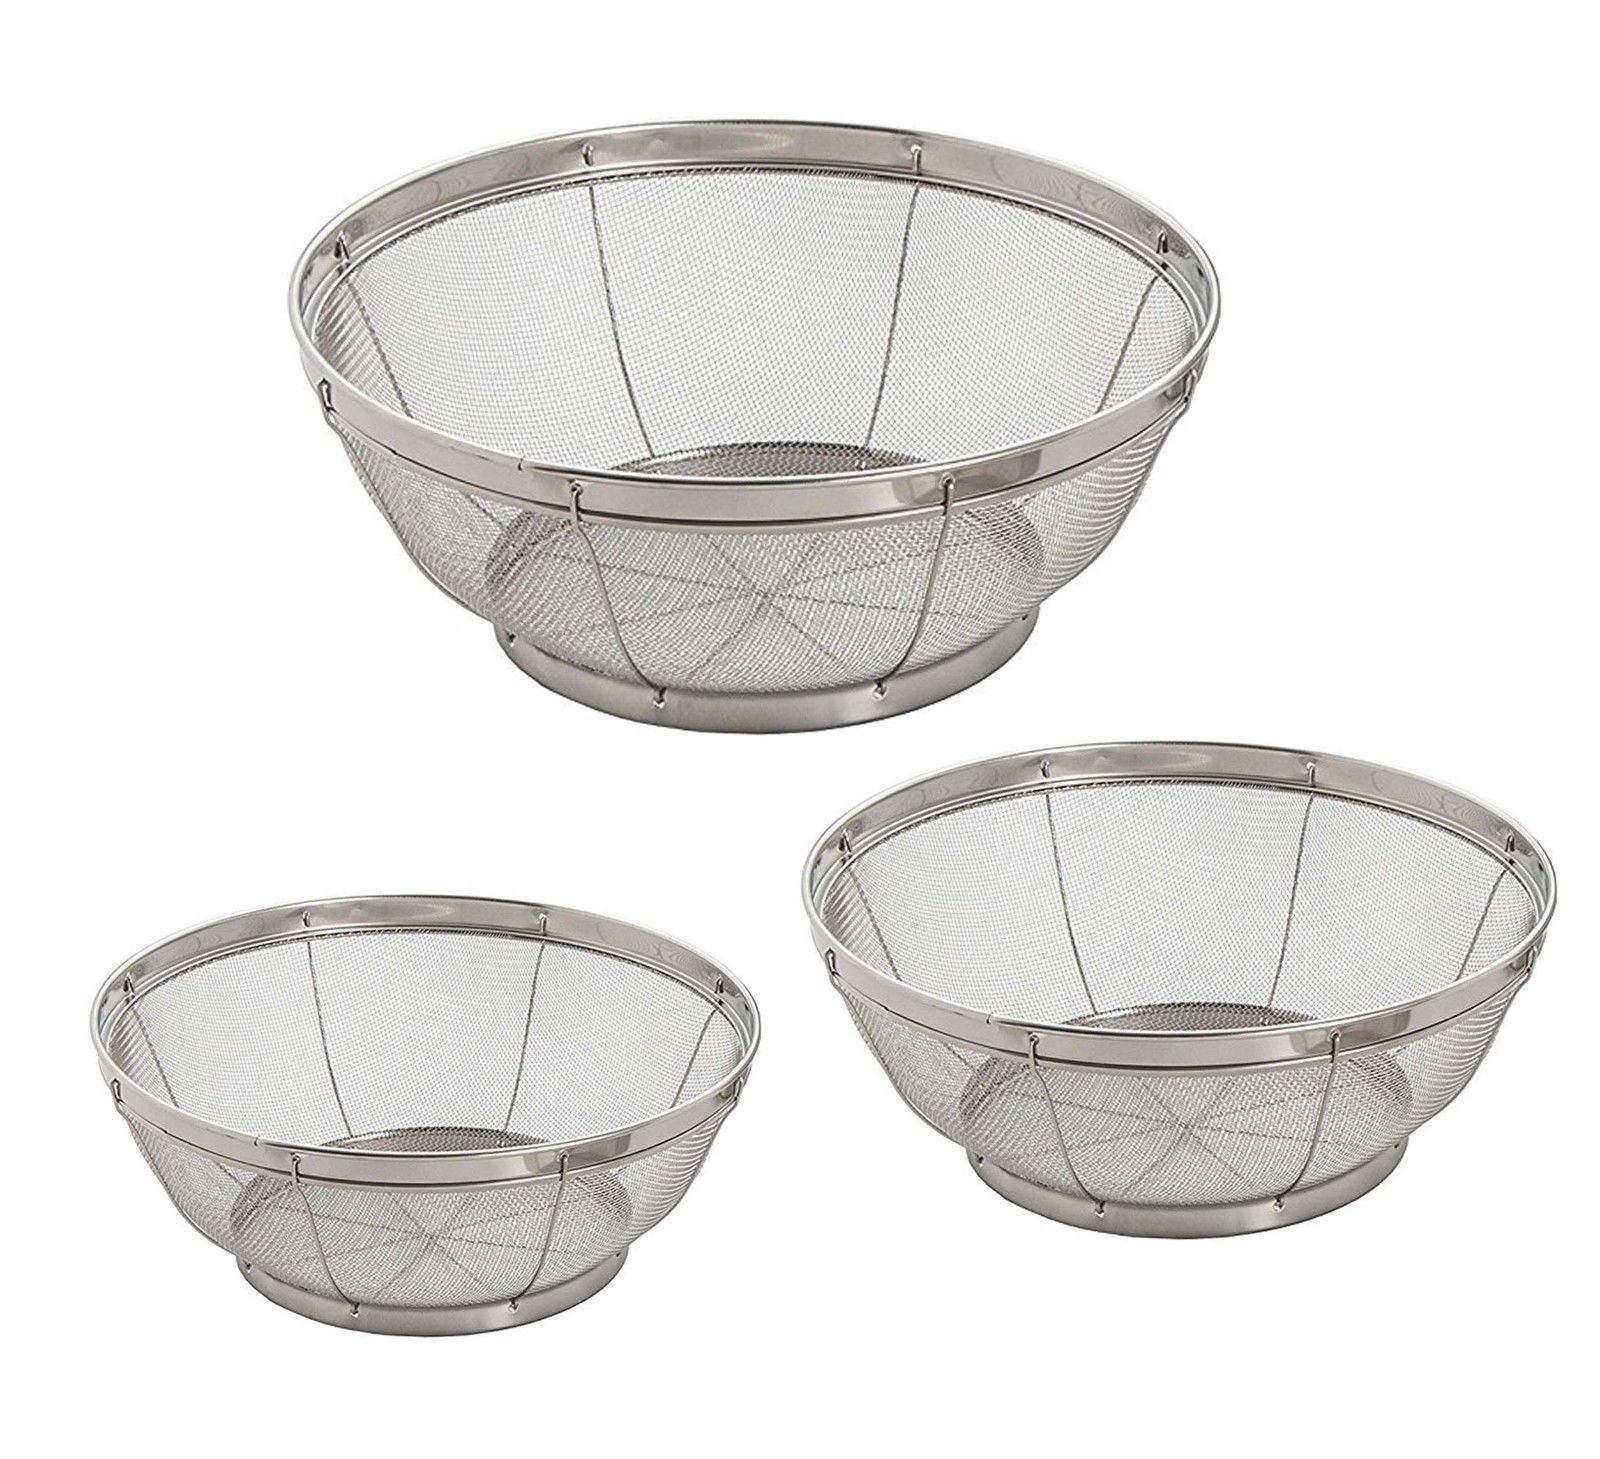 Set of 3- Wash Strainer Colander Reinforced Basket Stainless Steel Kitchen Sieve Strainer with Fine Mesh Net Quality( Straining, Draining,Wash Vegetable, Noodles)